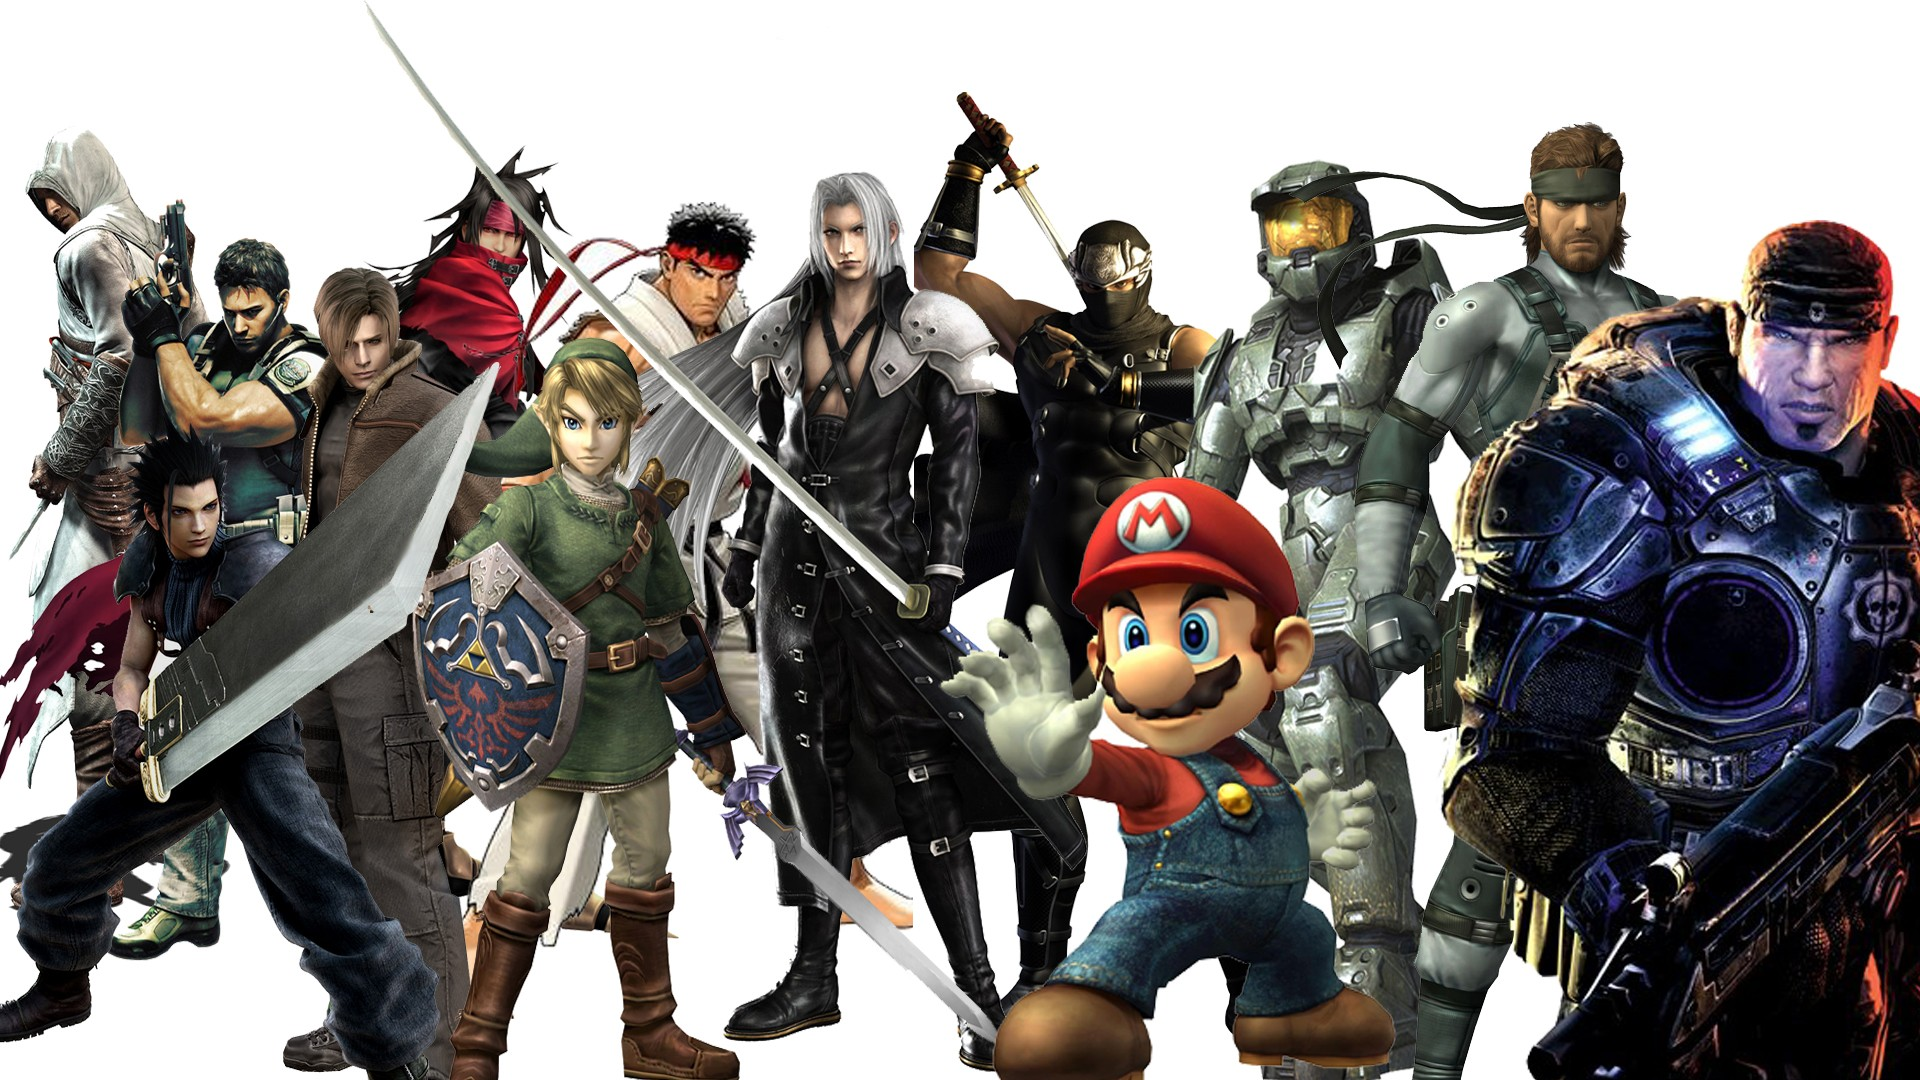 video games Gamespot is the world's largest source for ps4, xbox one, ps3, xbox 360, wii u, ps vita, wii pc, 3ds, psp, ds, video game news, reviews, previews, trailers, walkthroughs, and more.